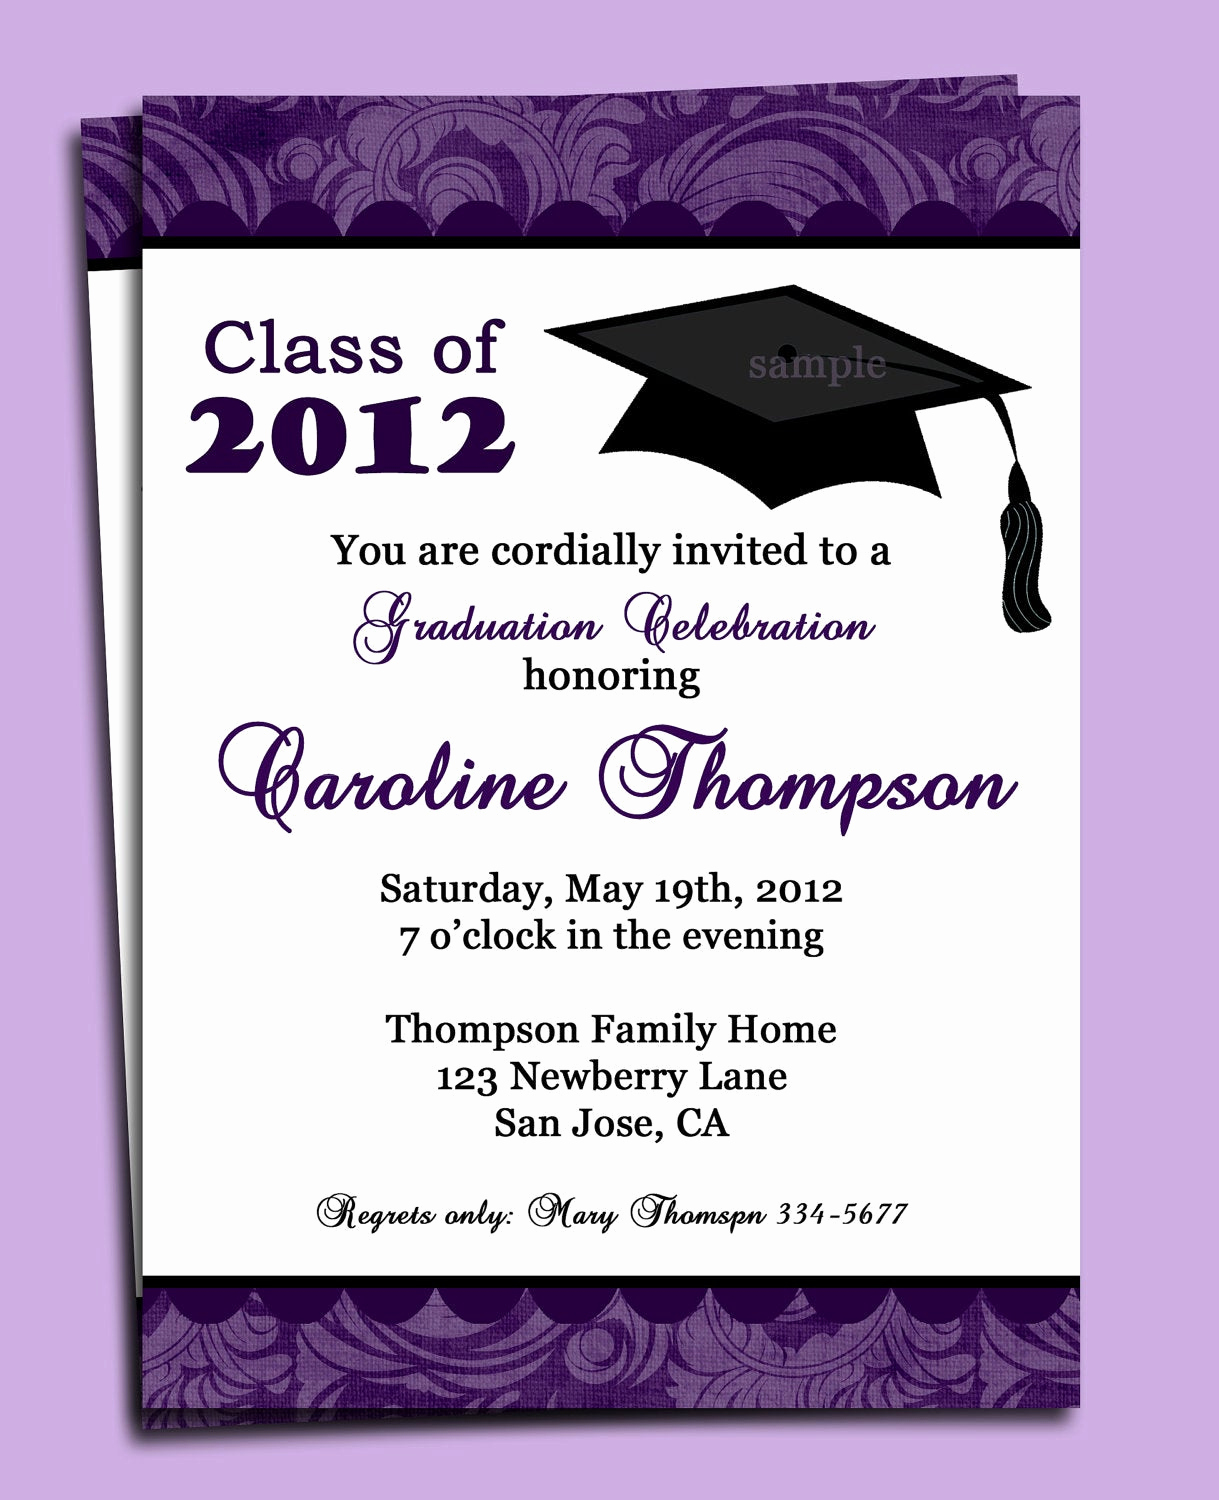 Graduation Announcement and Party Invitation Inspirational Graduation Party or Announcement Invitation Printable or